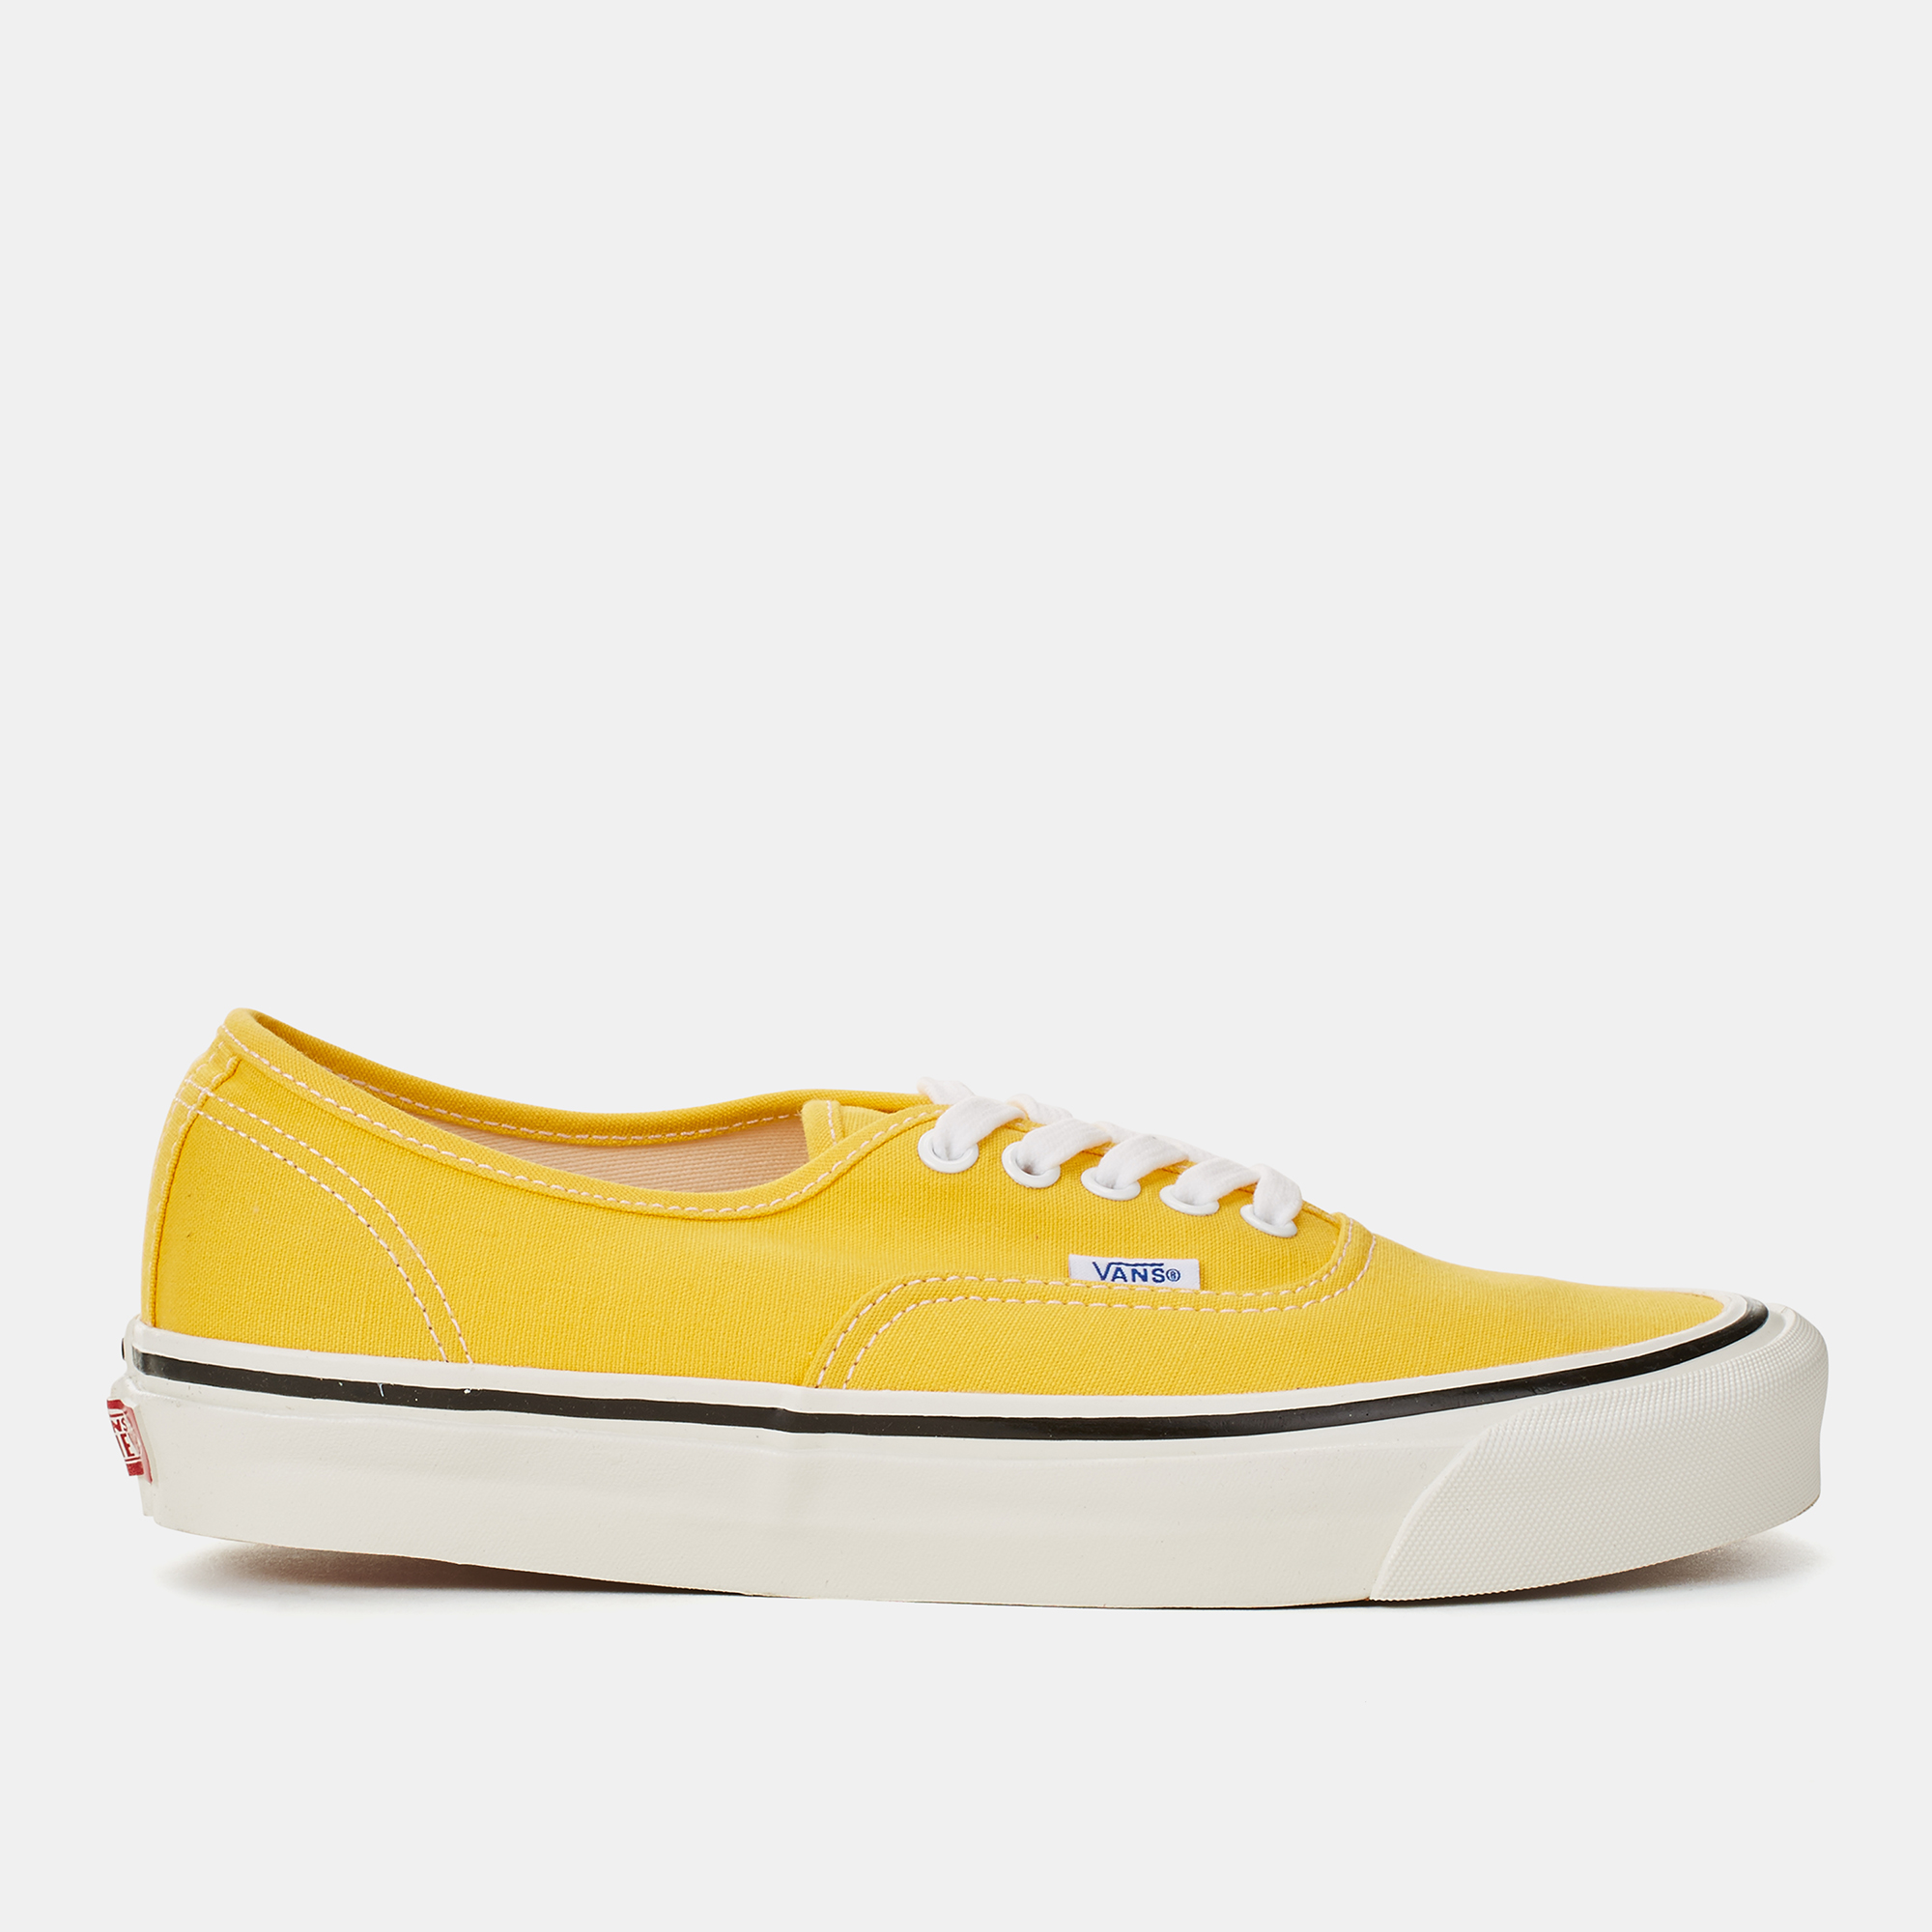 e512a5b8a533f5 Shop Yellow Vans Anaheim Factory Authentic 44 DX Shoe for Womens by Vans